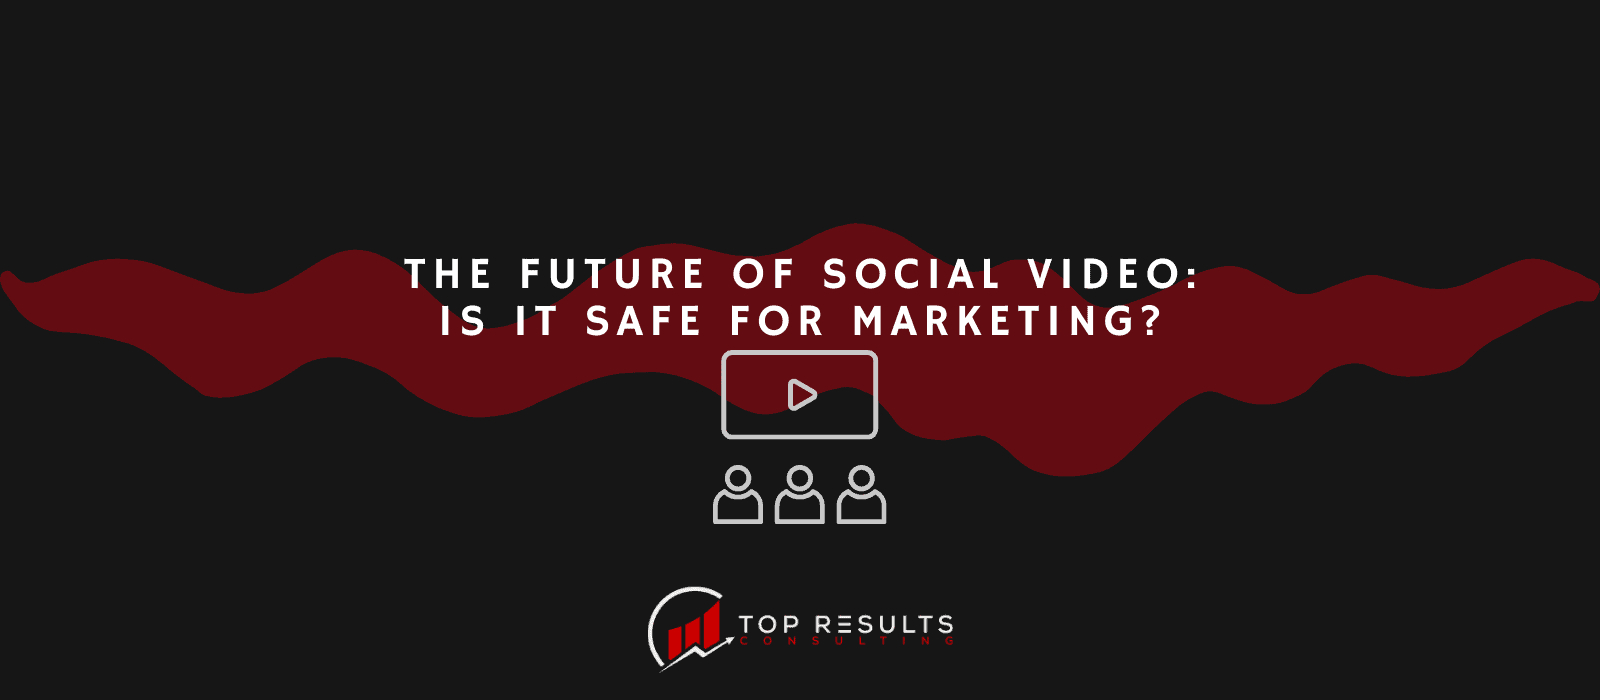 The Future of Social Video